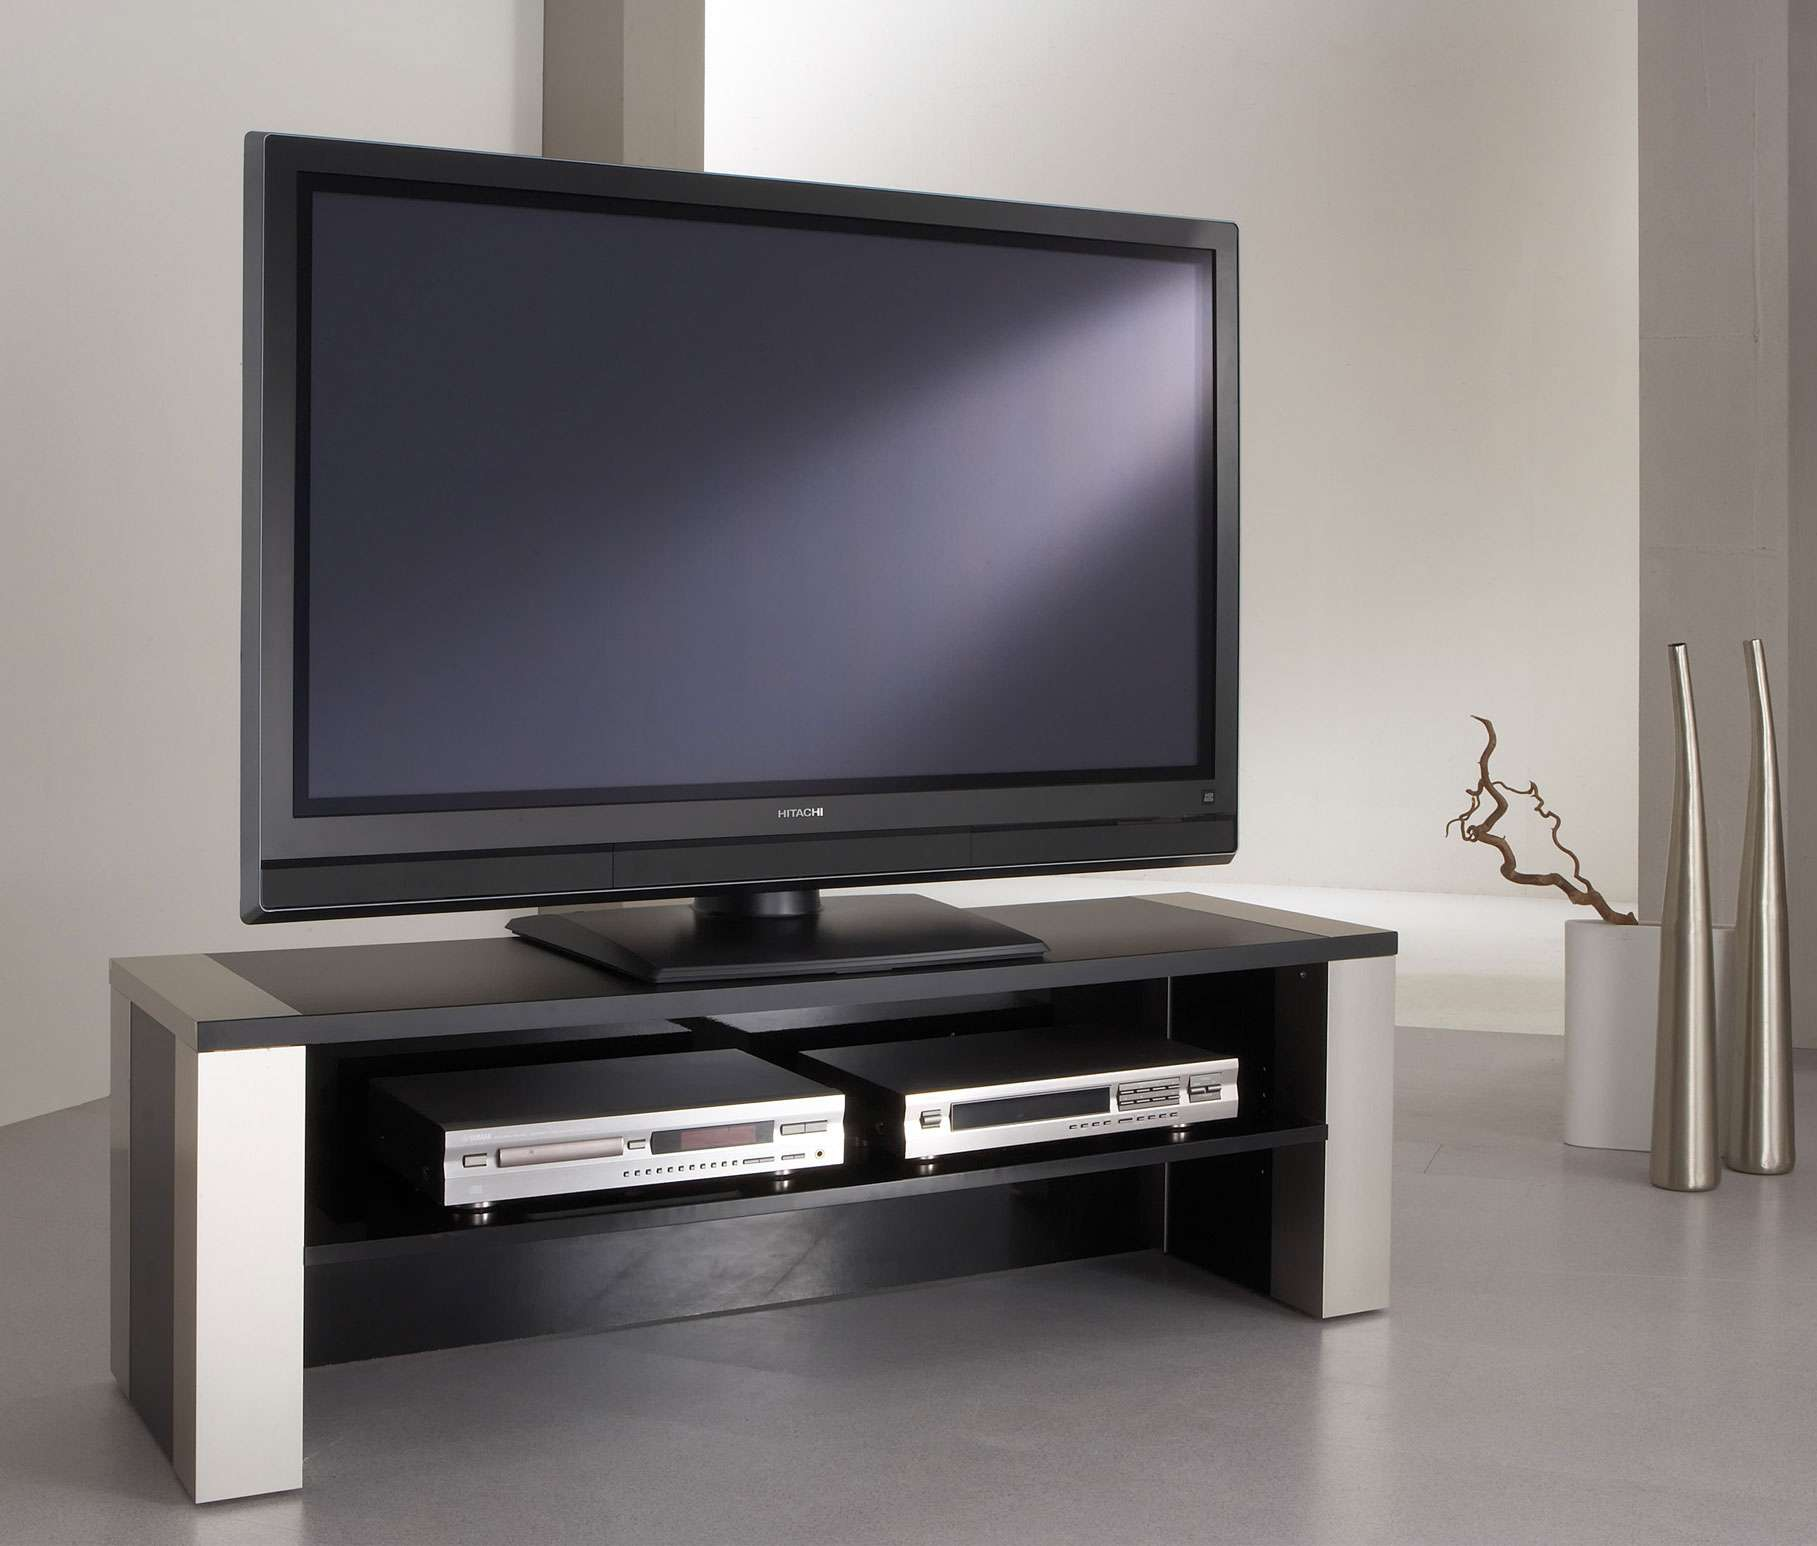 das moderne tv rack cmb systeme. Black Bedroom Furniture Sets. Home Design Ideas